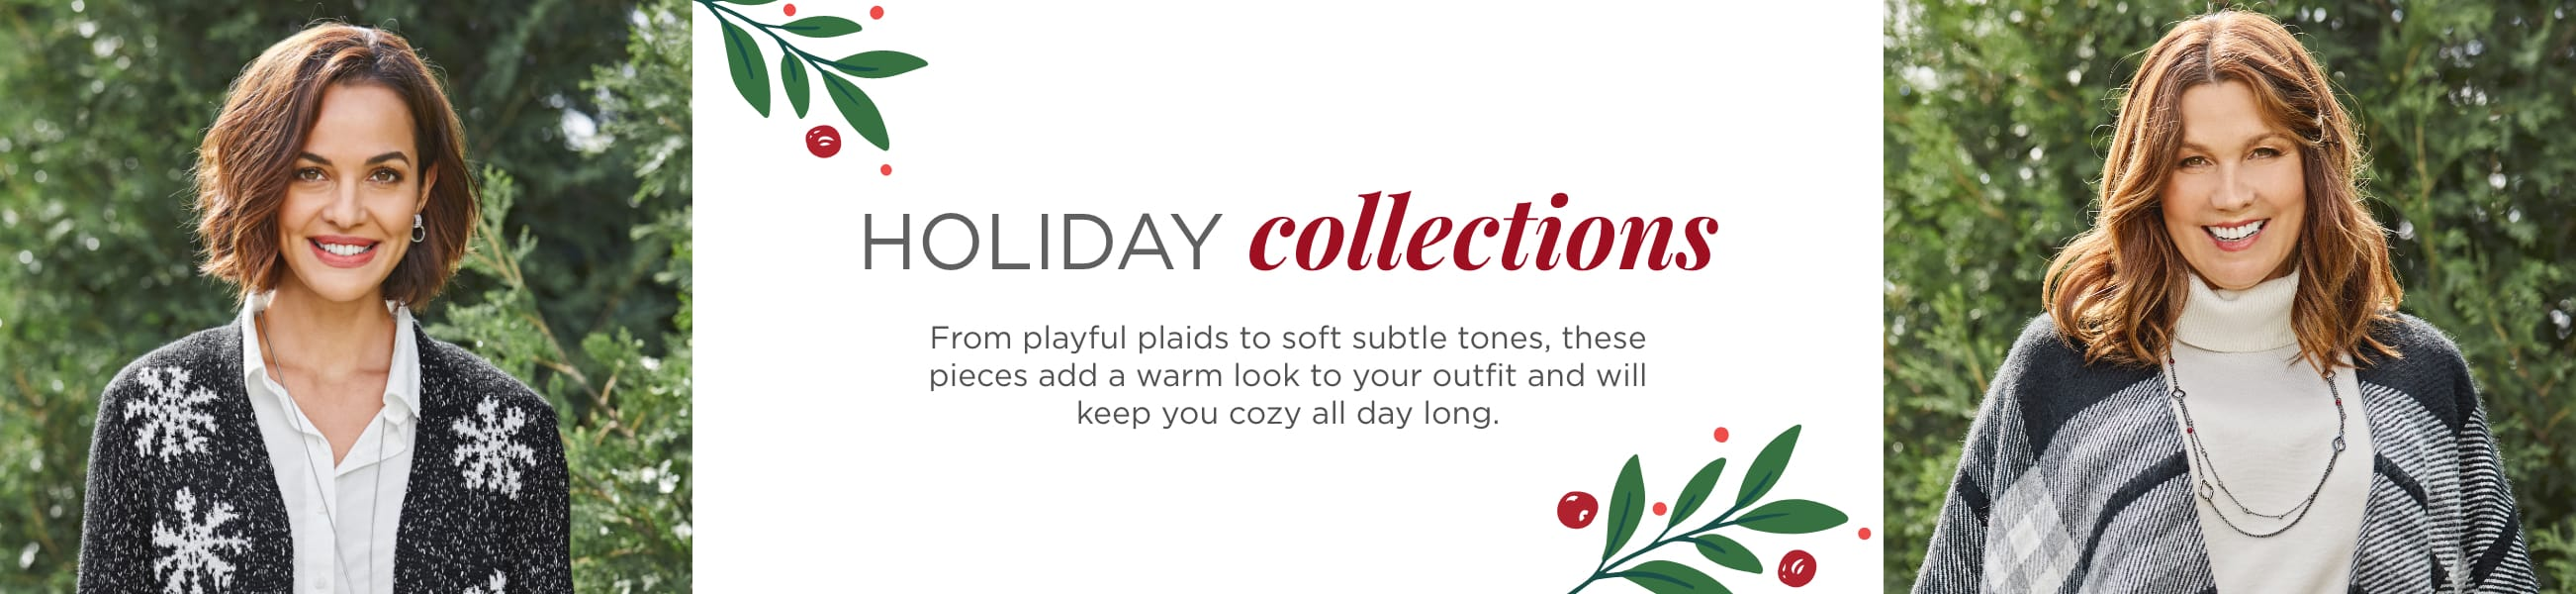 Holiday Collections. From playful plaids to soft subtle tones, these pieces add a warm look to your outfit and will keep you cozy all day long..